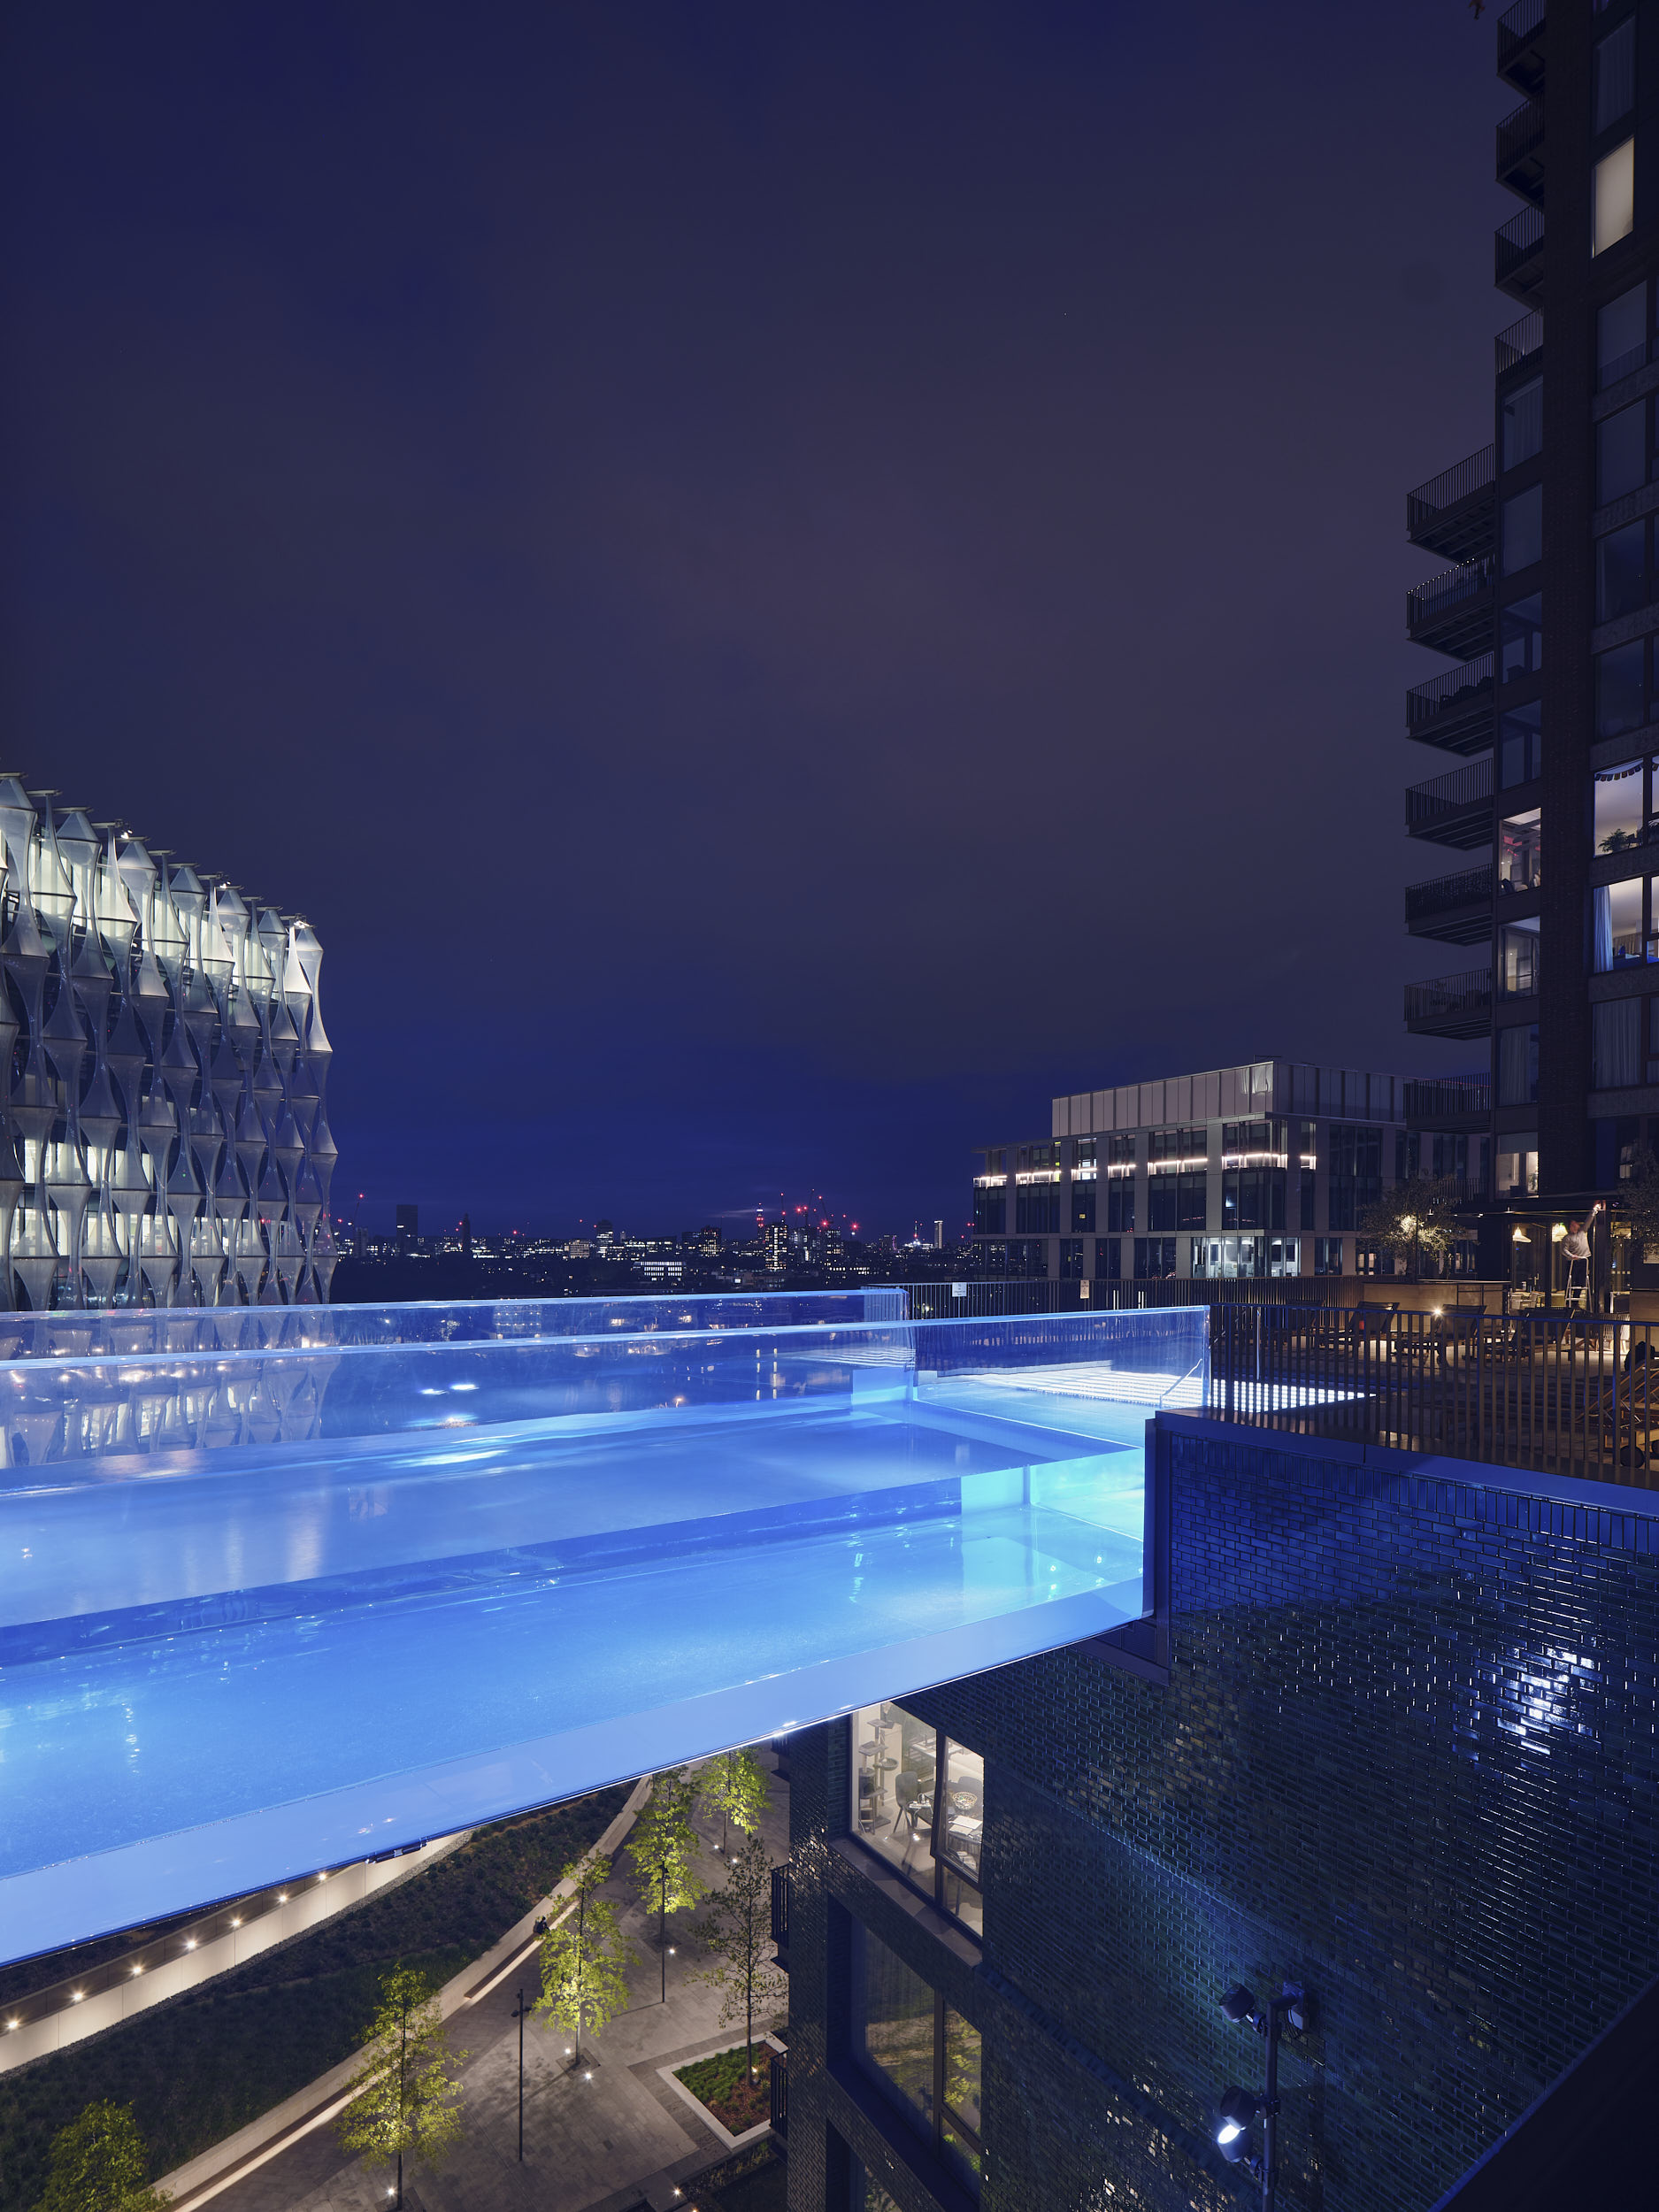 The pool is engineered to respond to the movement of the supporting buildings.